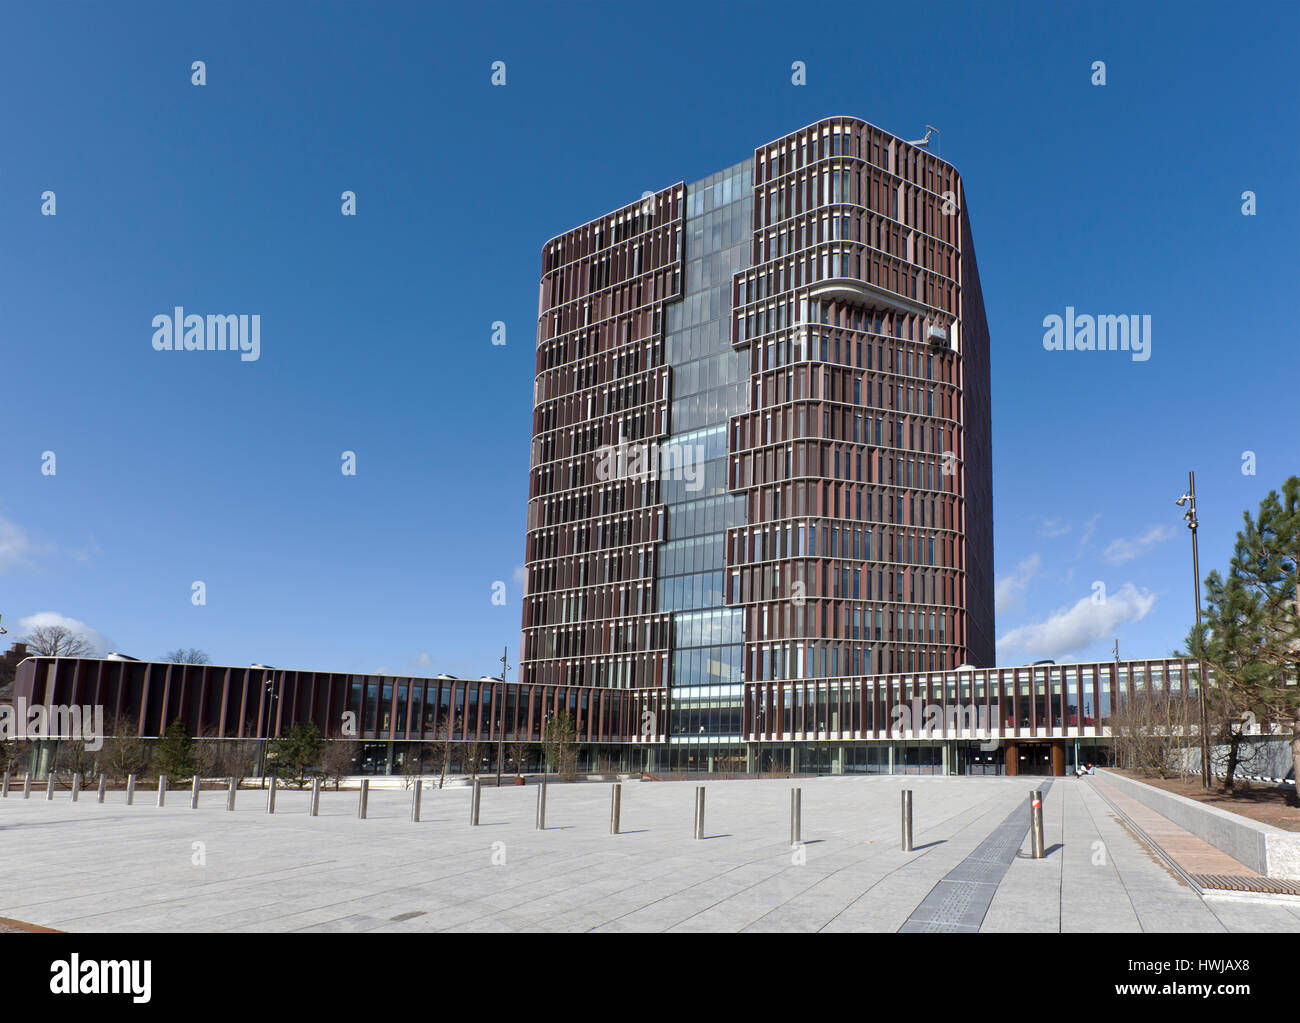 The Maersk Tower. Faculty of Health and Medical Sciences, University of Copenhagen, Denmark. Part of the Panum complex. - Stock Image